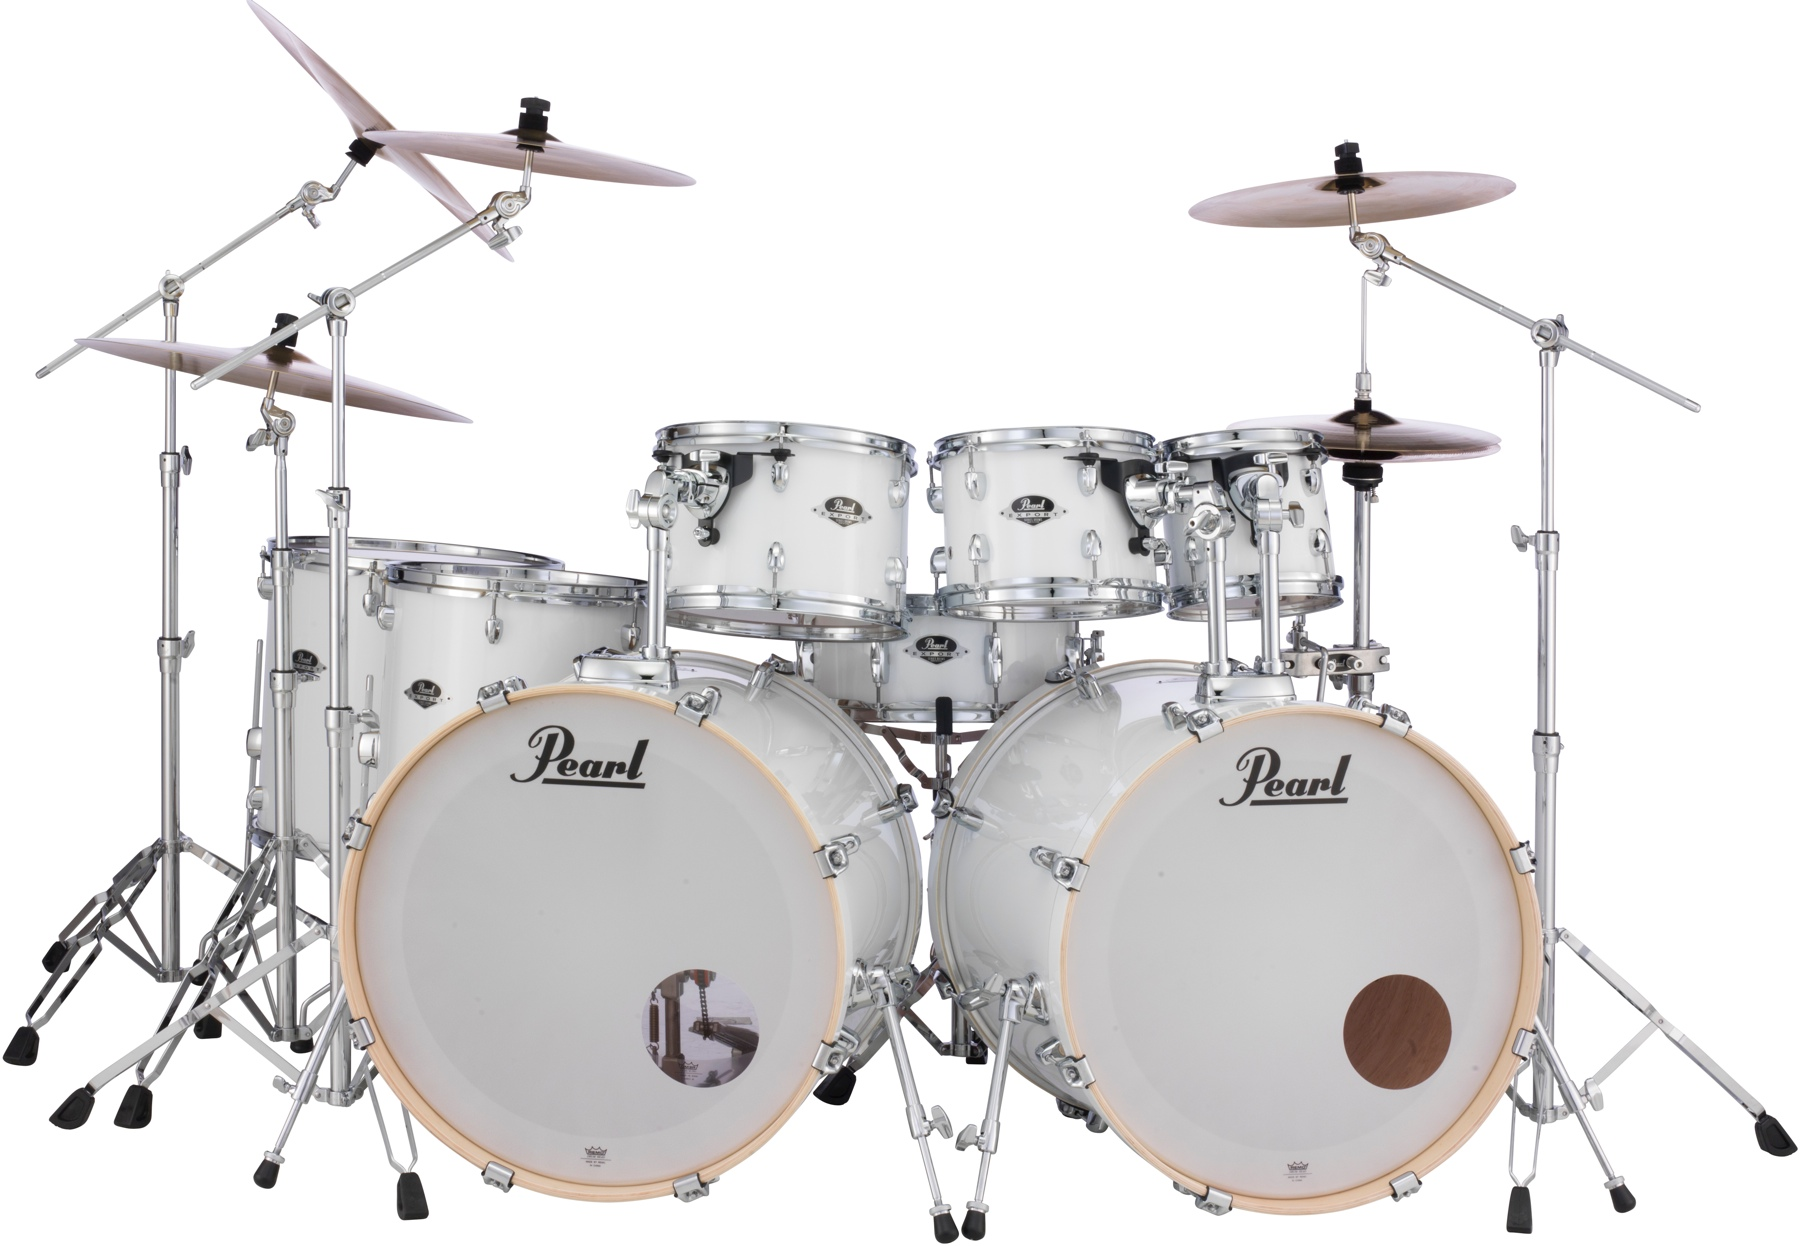 1. Pearl Export EXX 8-piece Double Bass Drum Set with Hardware - Pure White